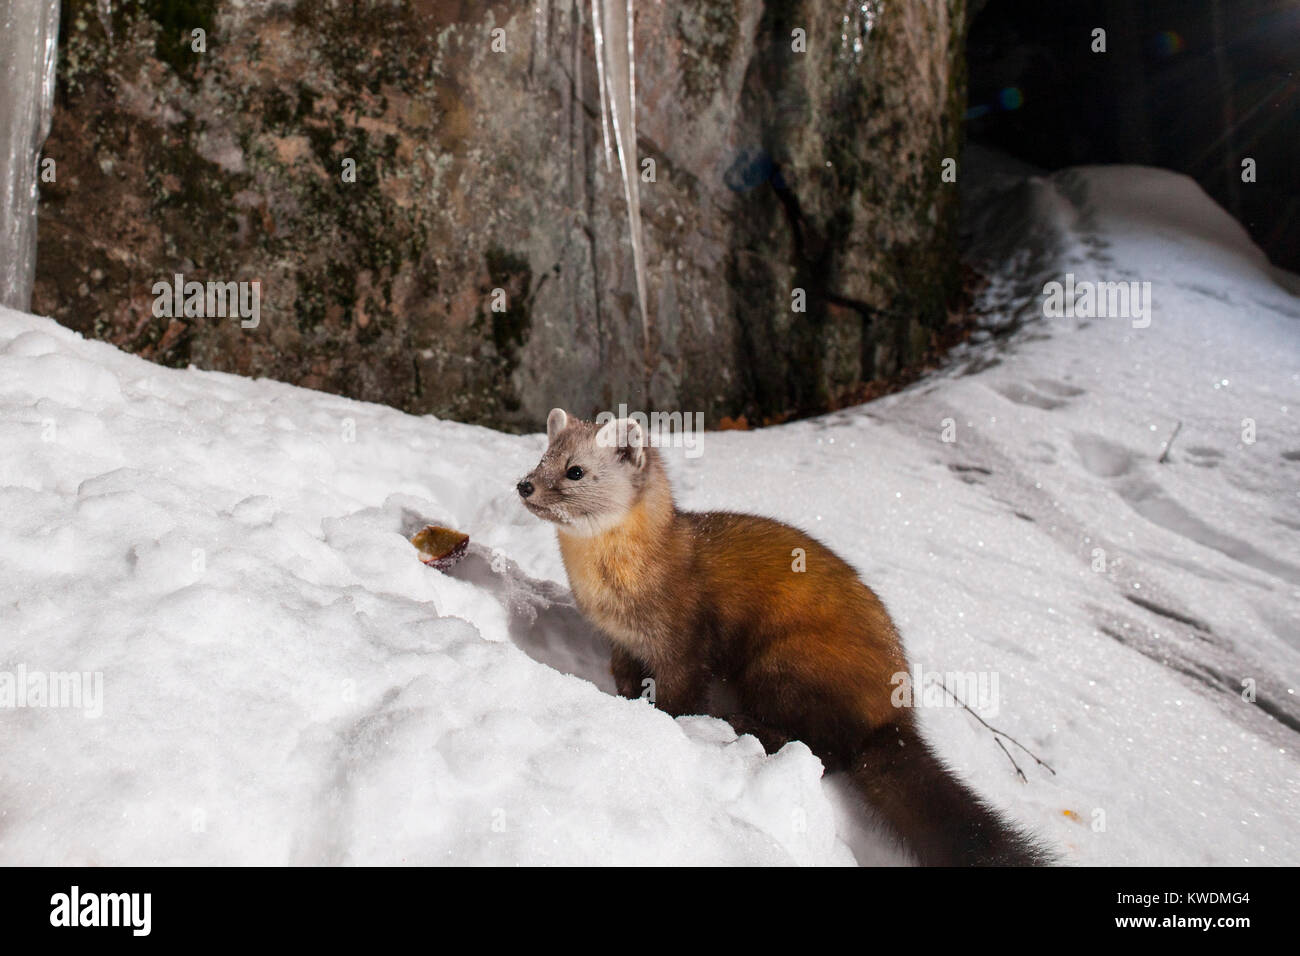 MAYNOOTH, ONTARIO, CANADA - December 21, 2017: A marten (Martes americana), part of the Weasel family / Mustelidae - Stock Image